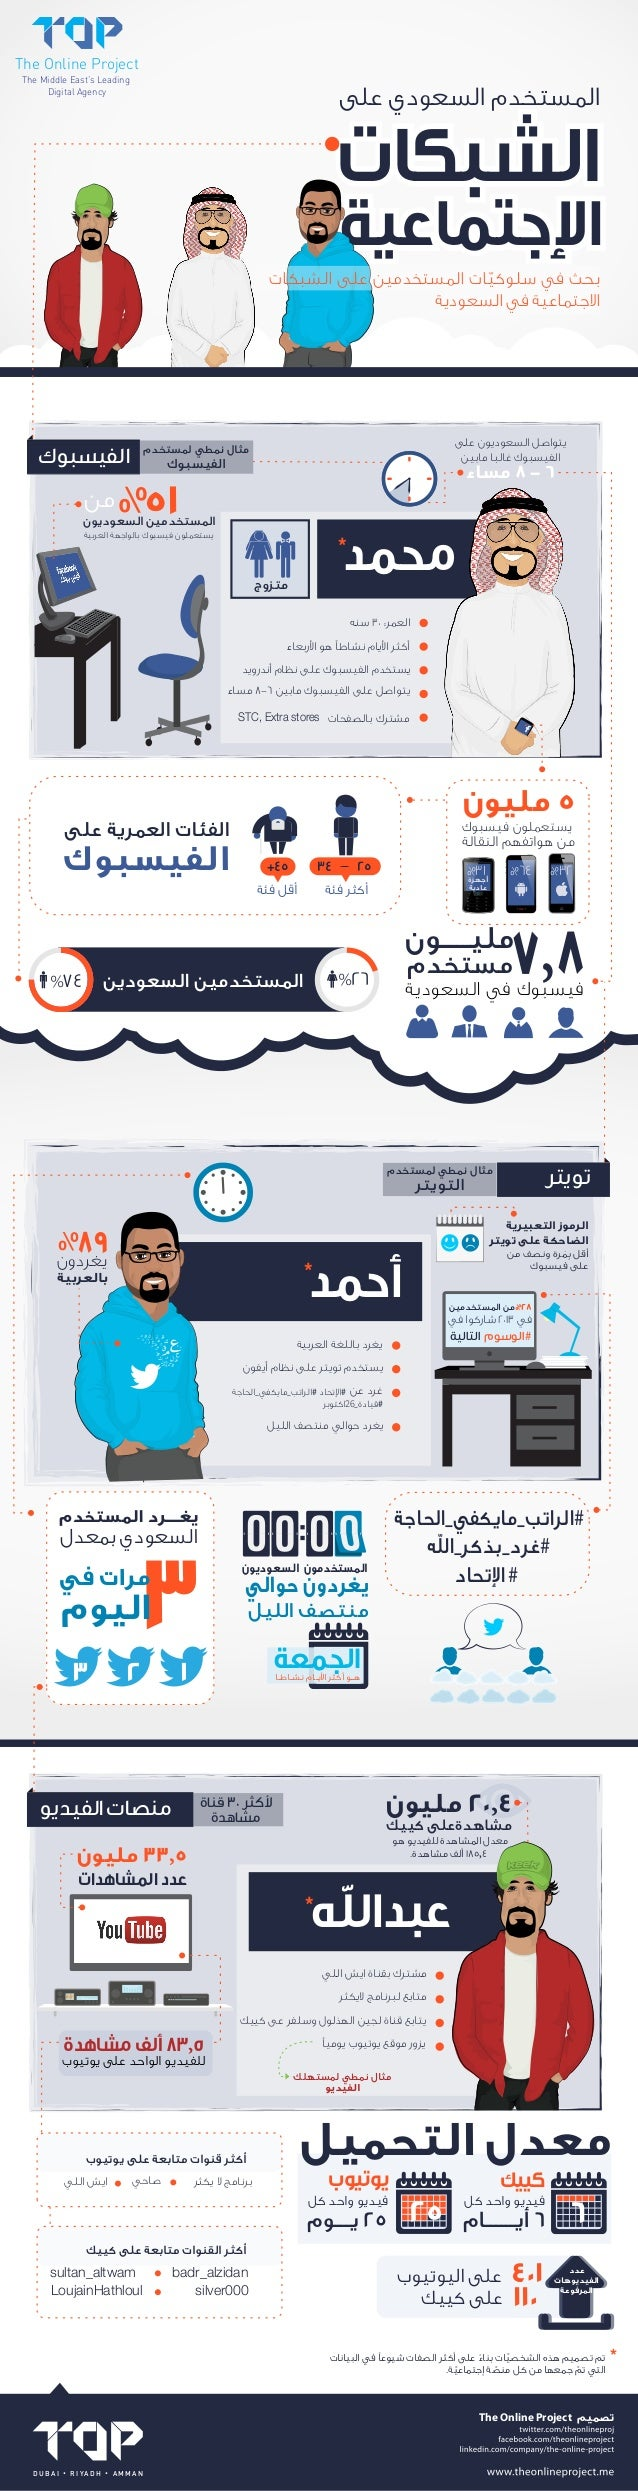 The Online Project The Middle East's Leading Digital Agency  8-6  %51  * 30 :  8-6  STC, Extra stores  5 34  +45  25  %31 ...